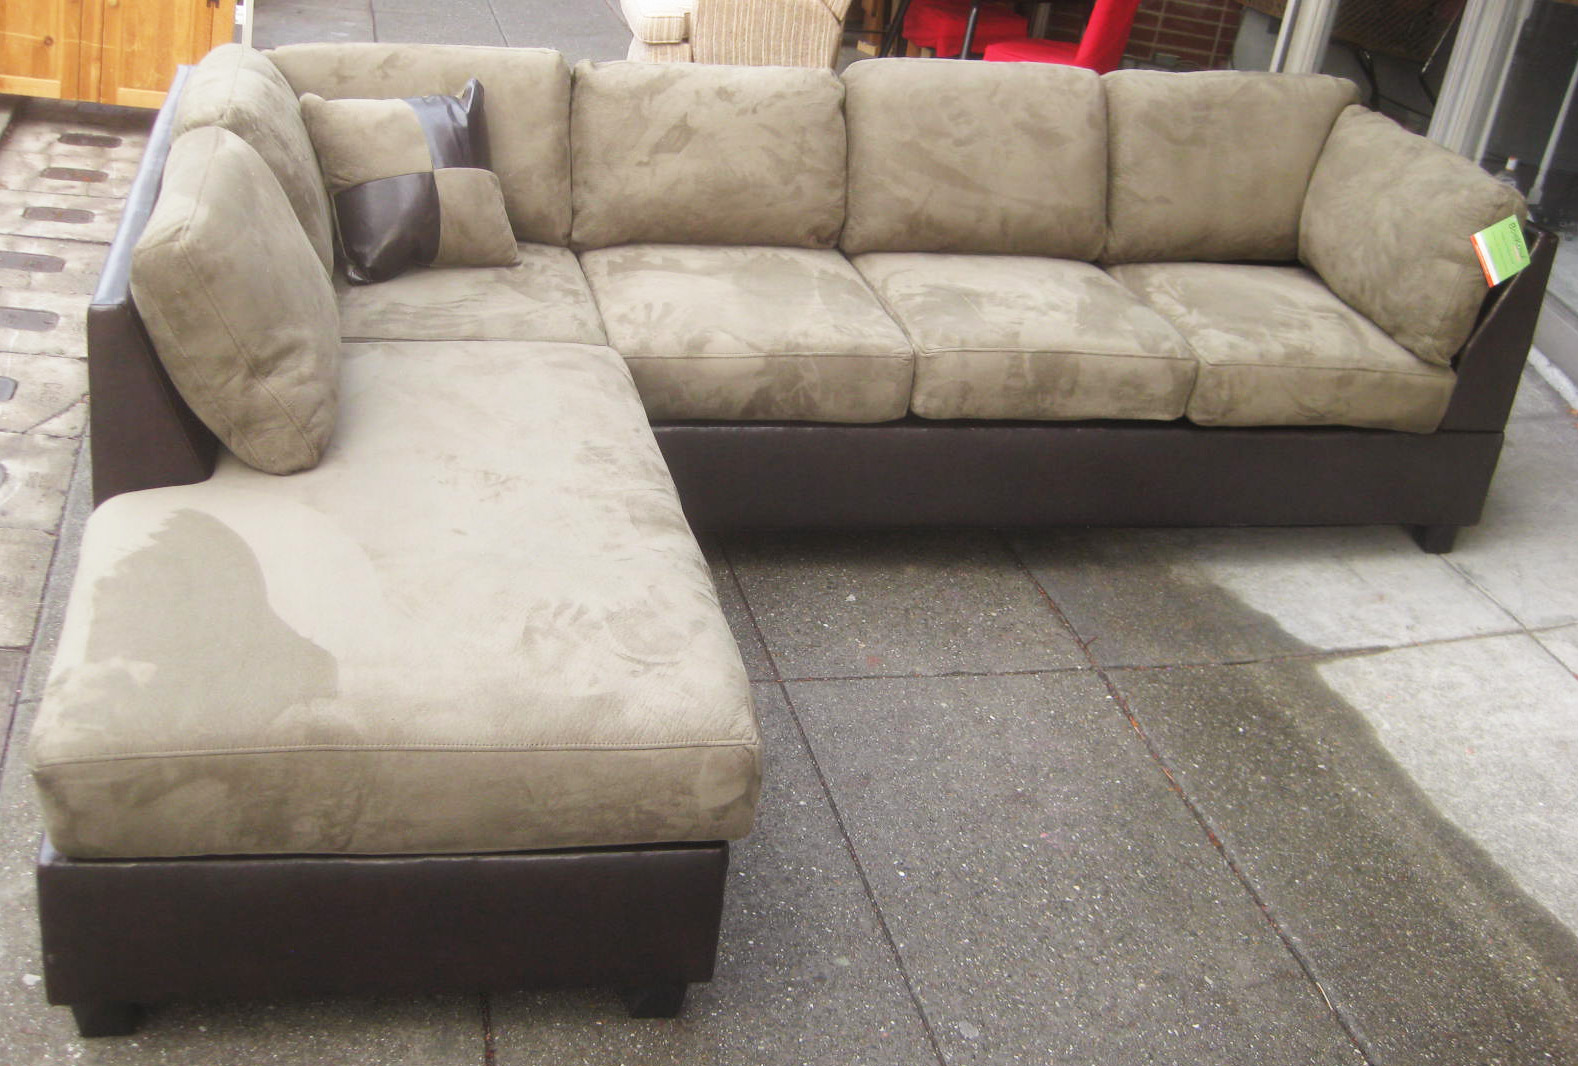 UHURU FURNITURE & COLLECTIBLES: SOLD - Leather ...